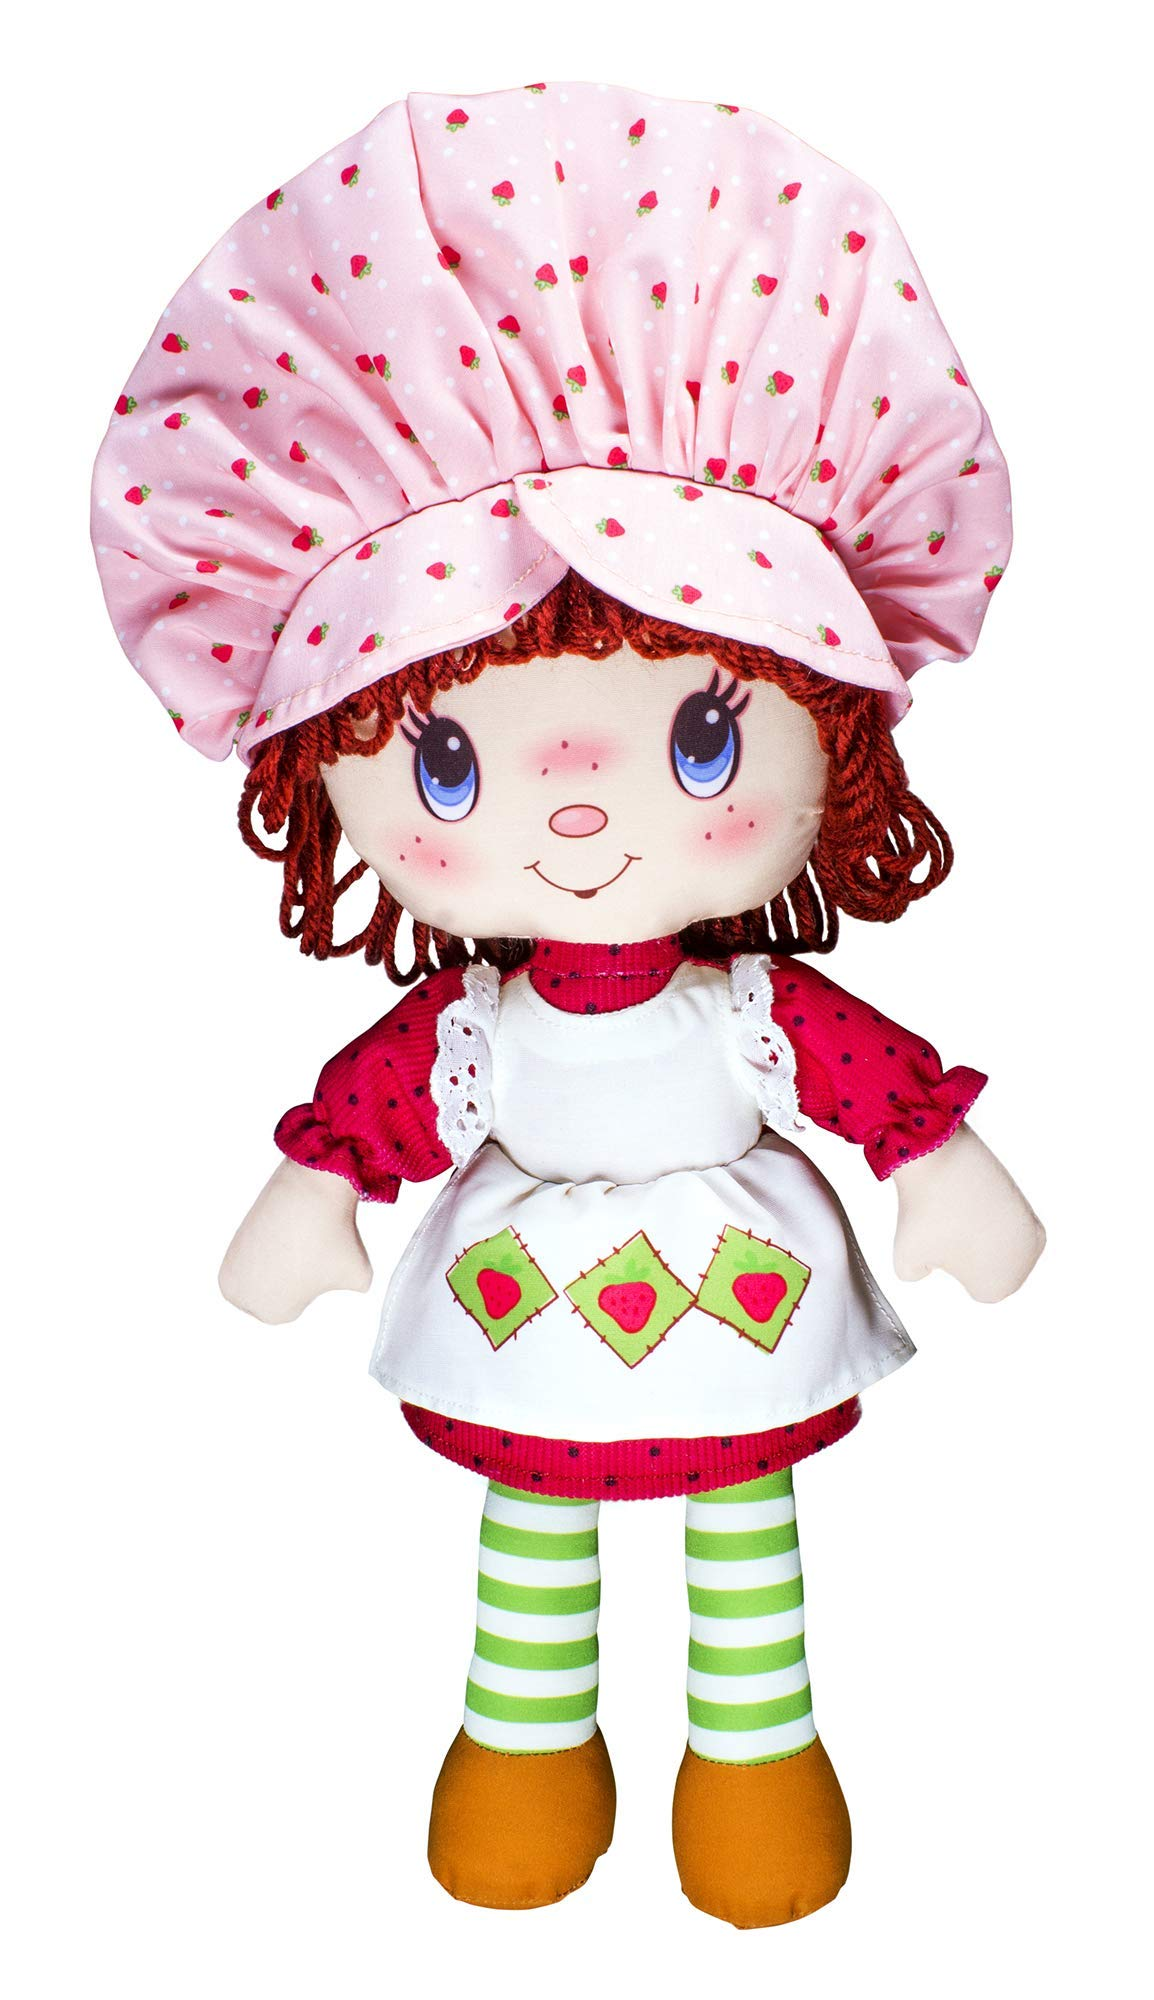 Strawberry Shortcake 40th Anniversary Retro Classic Soft Doll, for 3 Years Old and Up, Styles May Vary